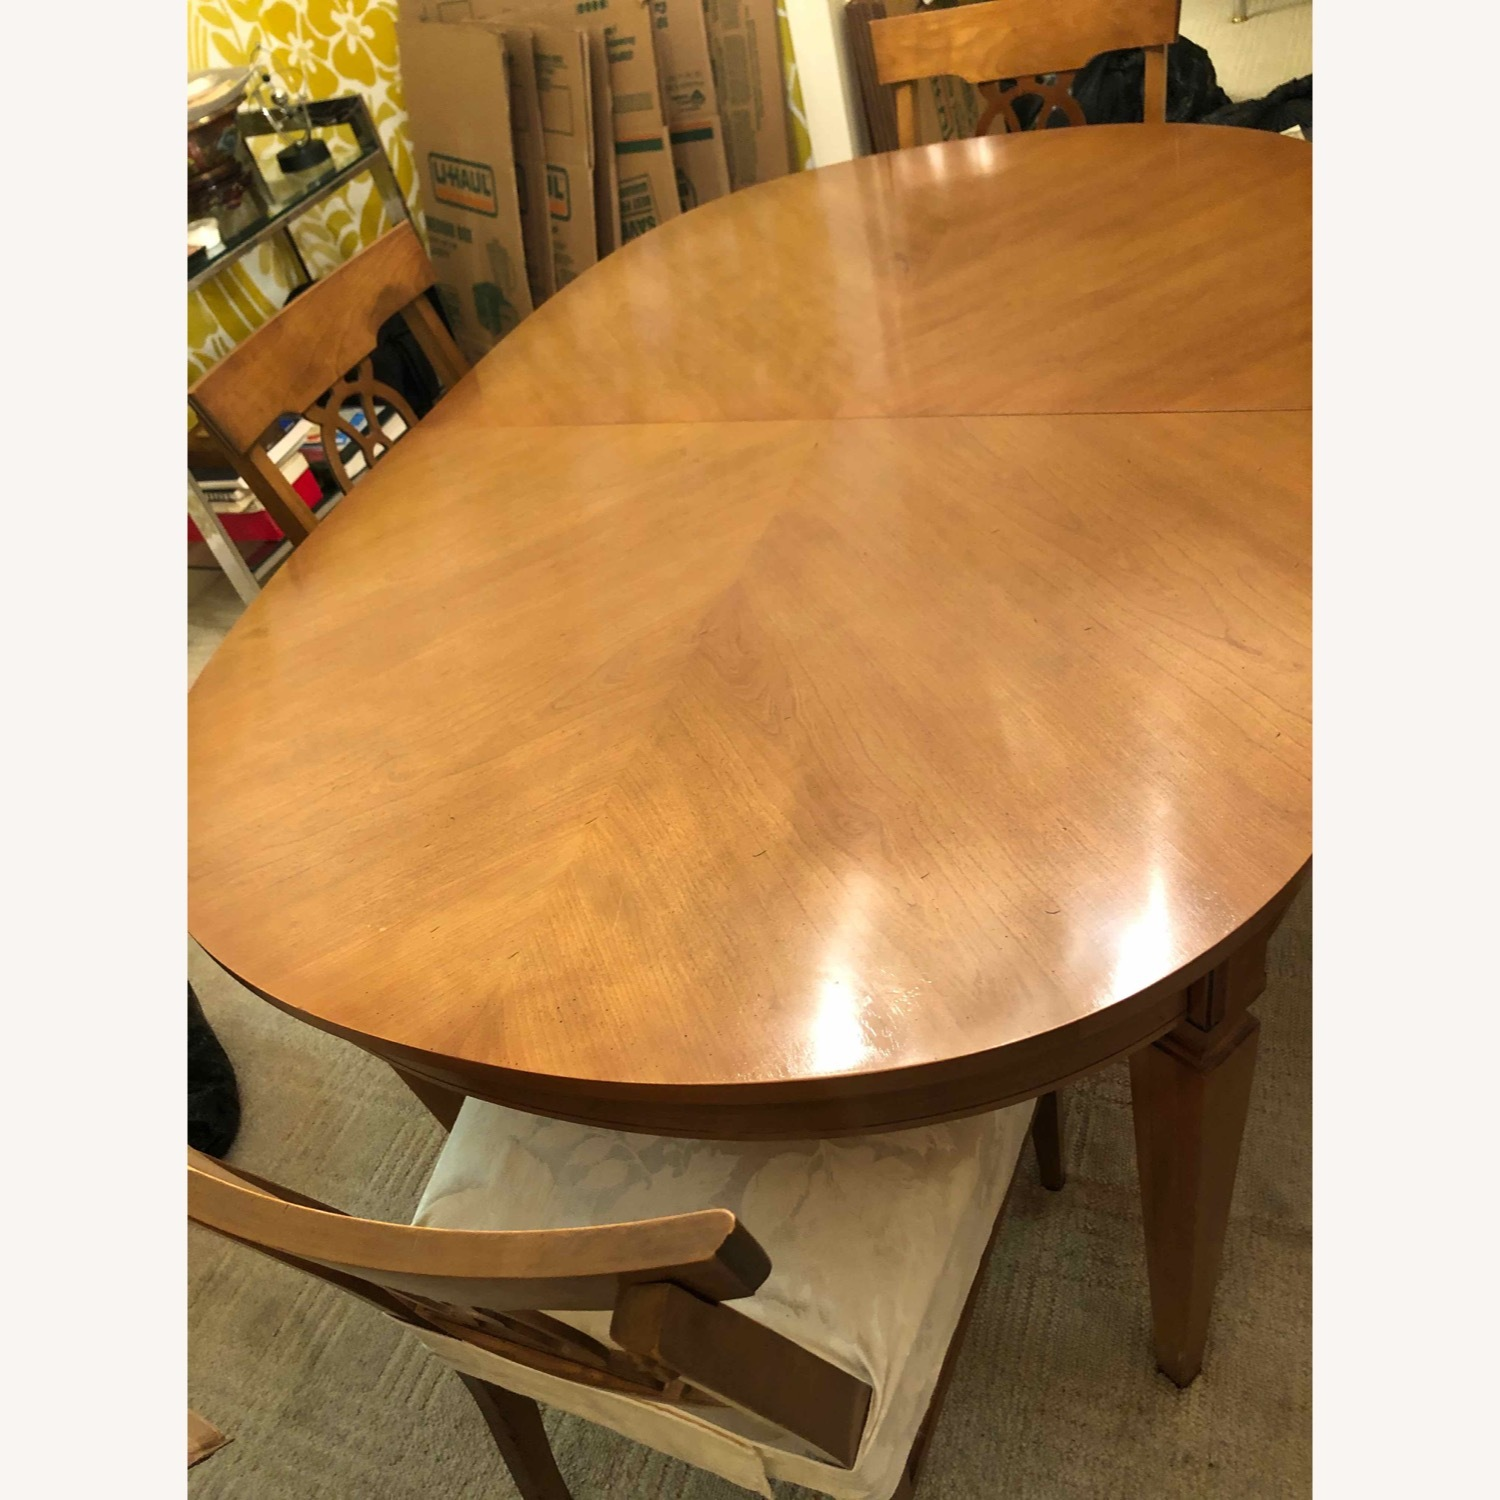 Italian Provincial Oval Dining Table - image-1